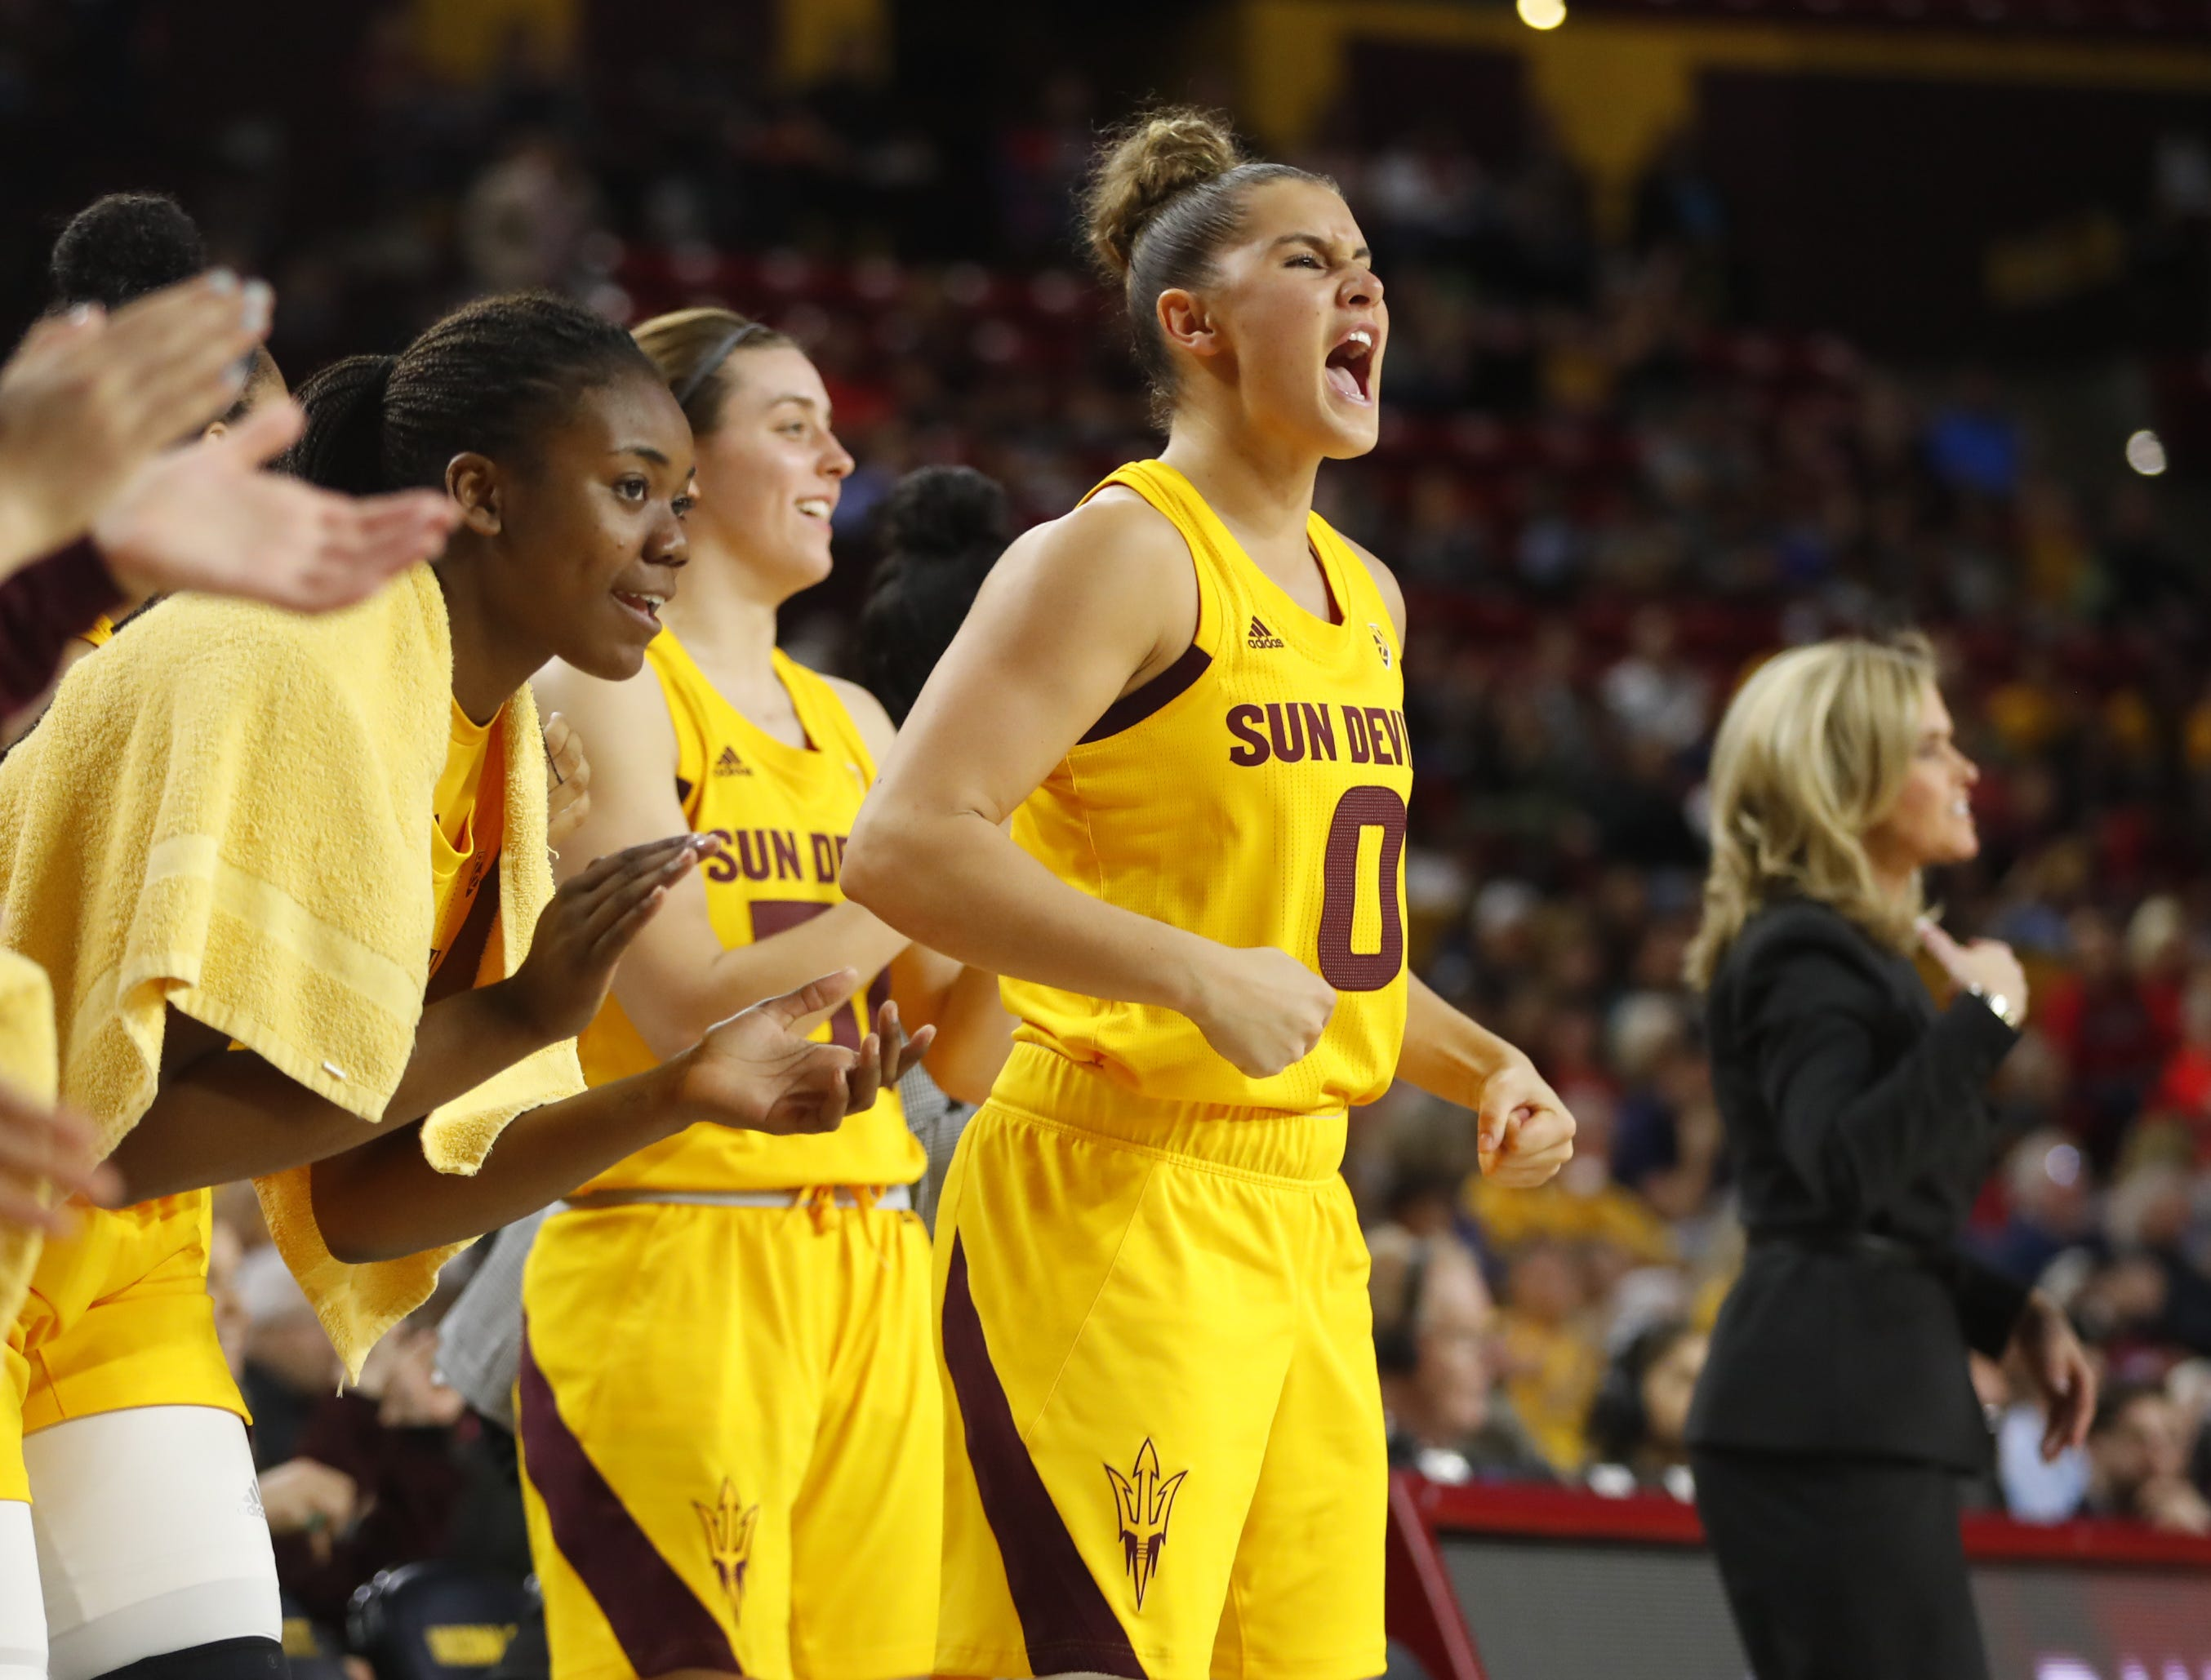 ASU's Taya Hanson (0) reacts from the bench after a basket against Arizona during the second half at Wells Fargo Arena in Tempe, Ariz. on February 1, 2019.